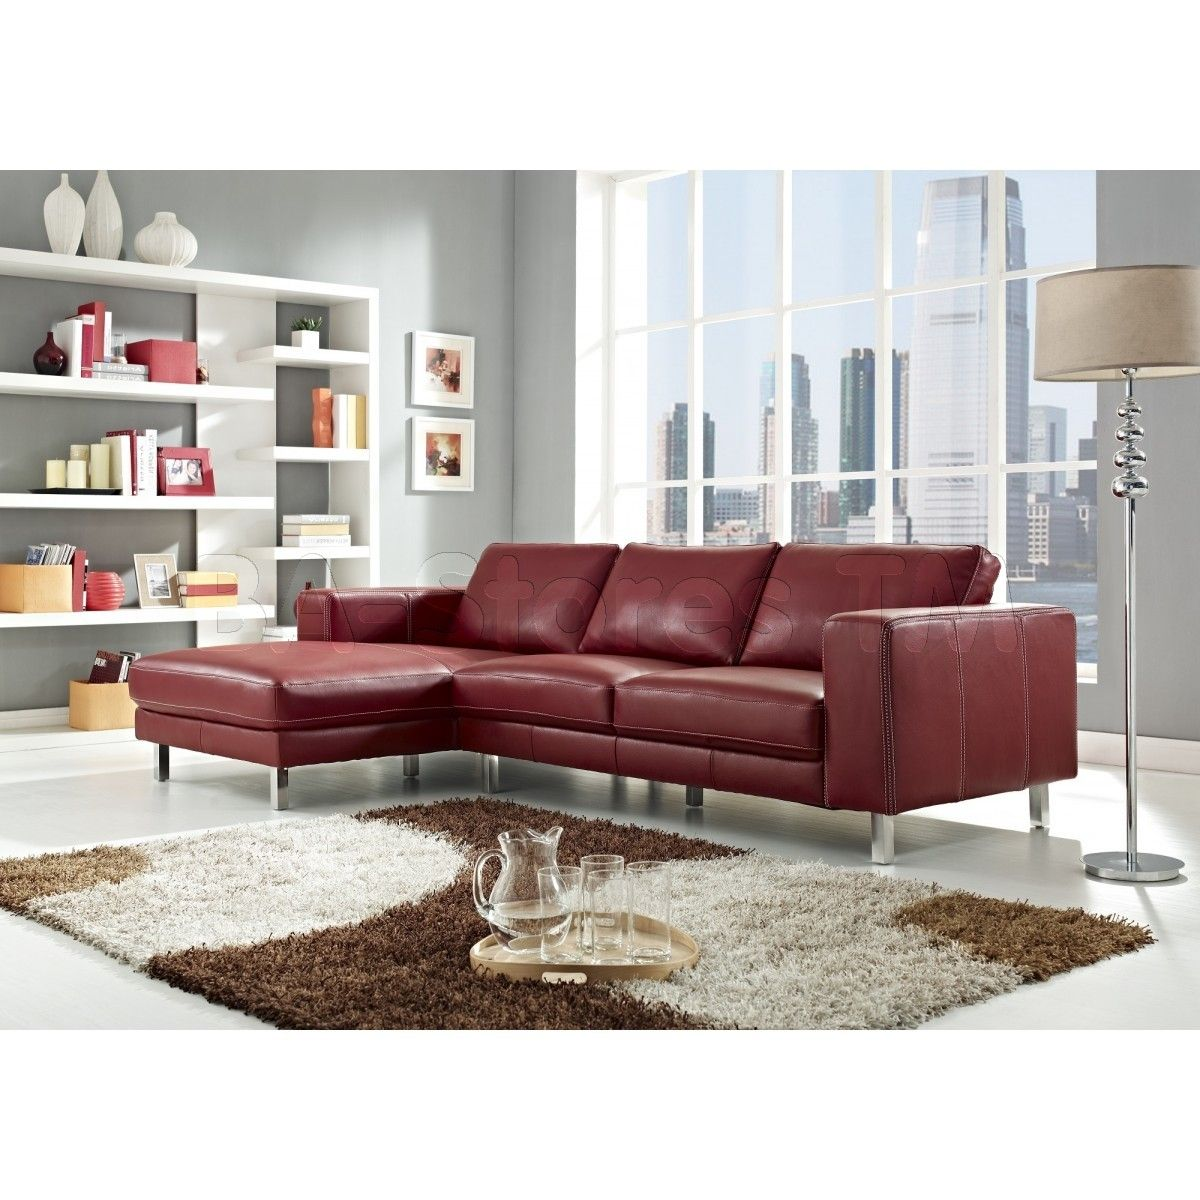 Natuzzi Editions Salvatore Sectional